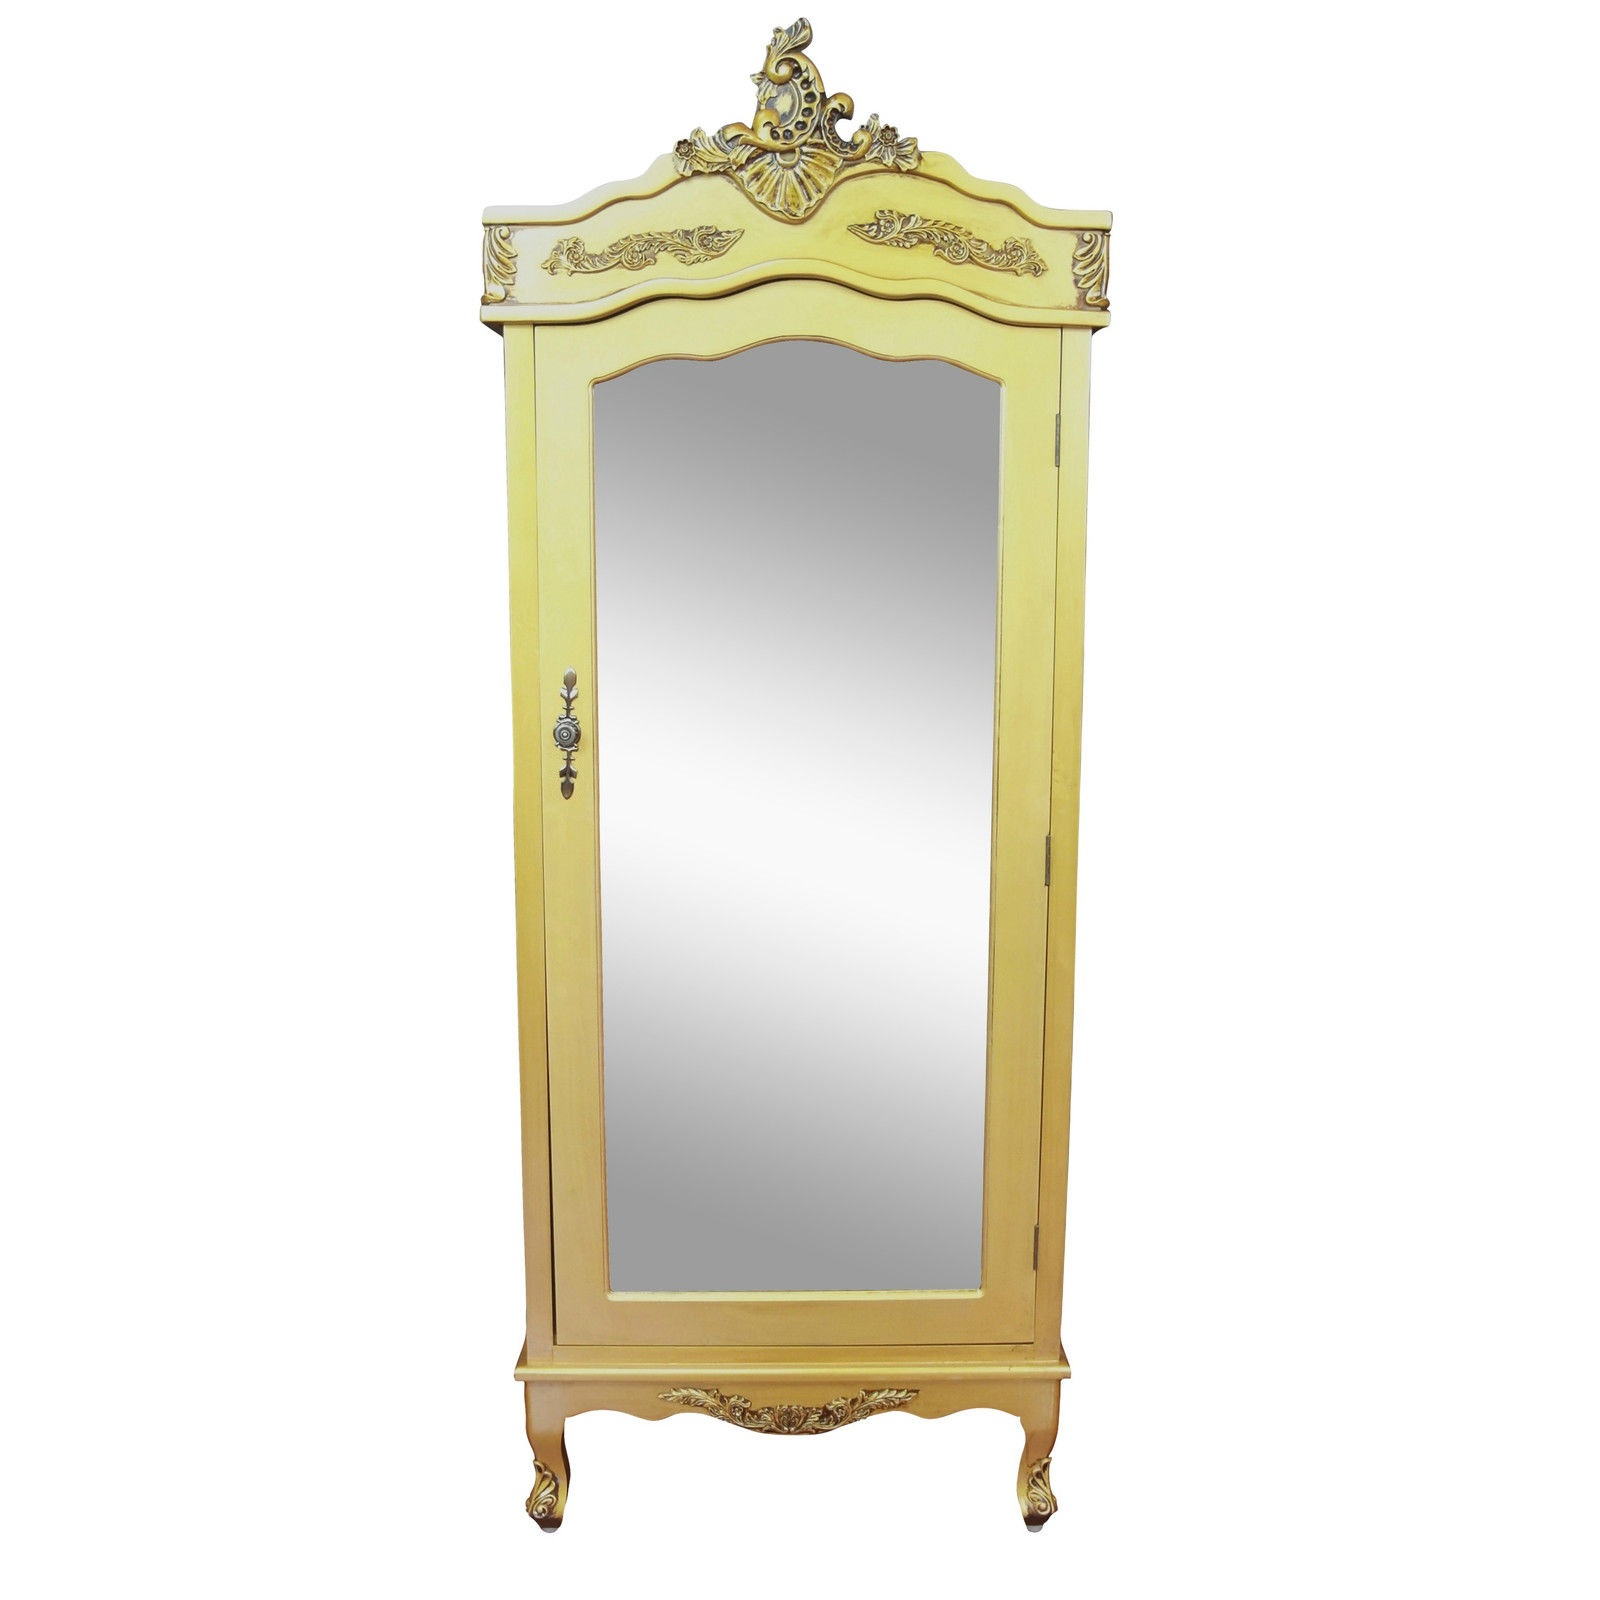 French Antique Gold Single Door Armoire with Mirrored Door